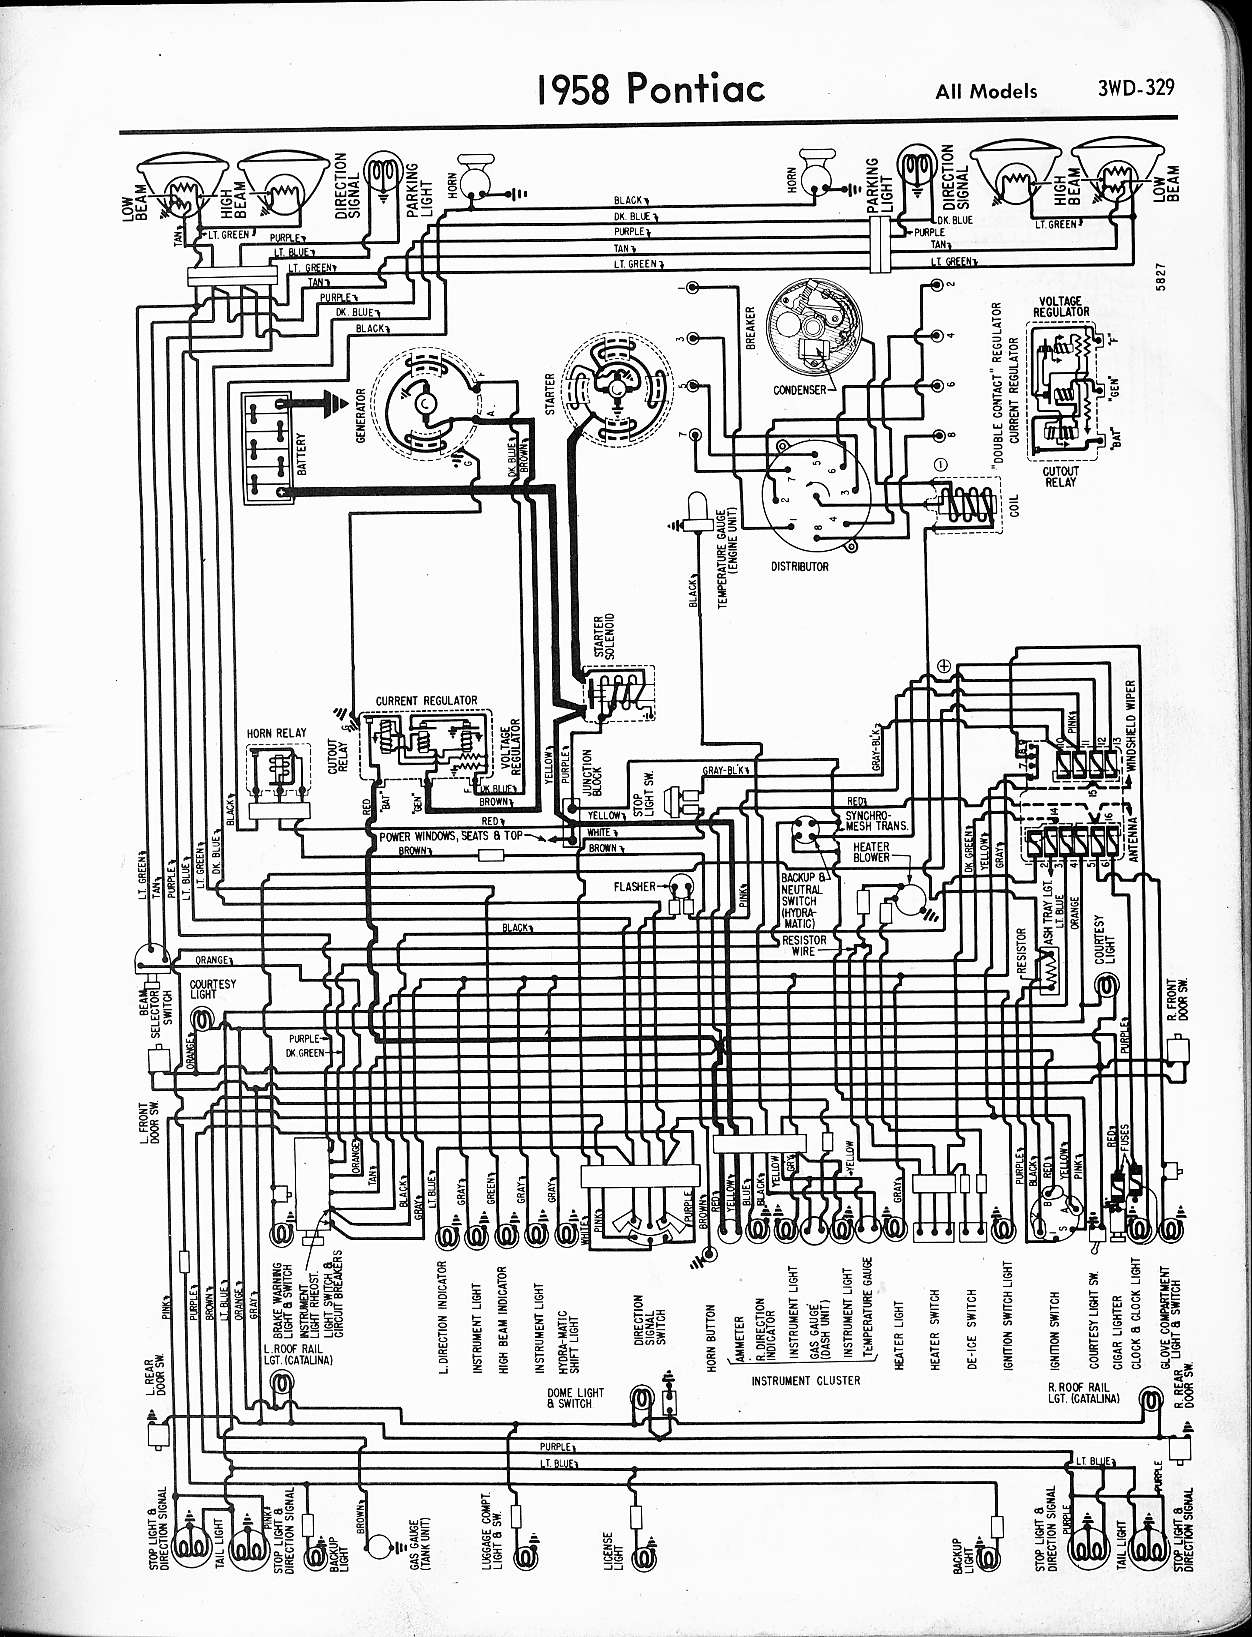 1972 pontiac catalina wiring diagram 69 pontiac lemans wiring diagram | wiring library #12